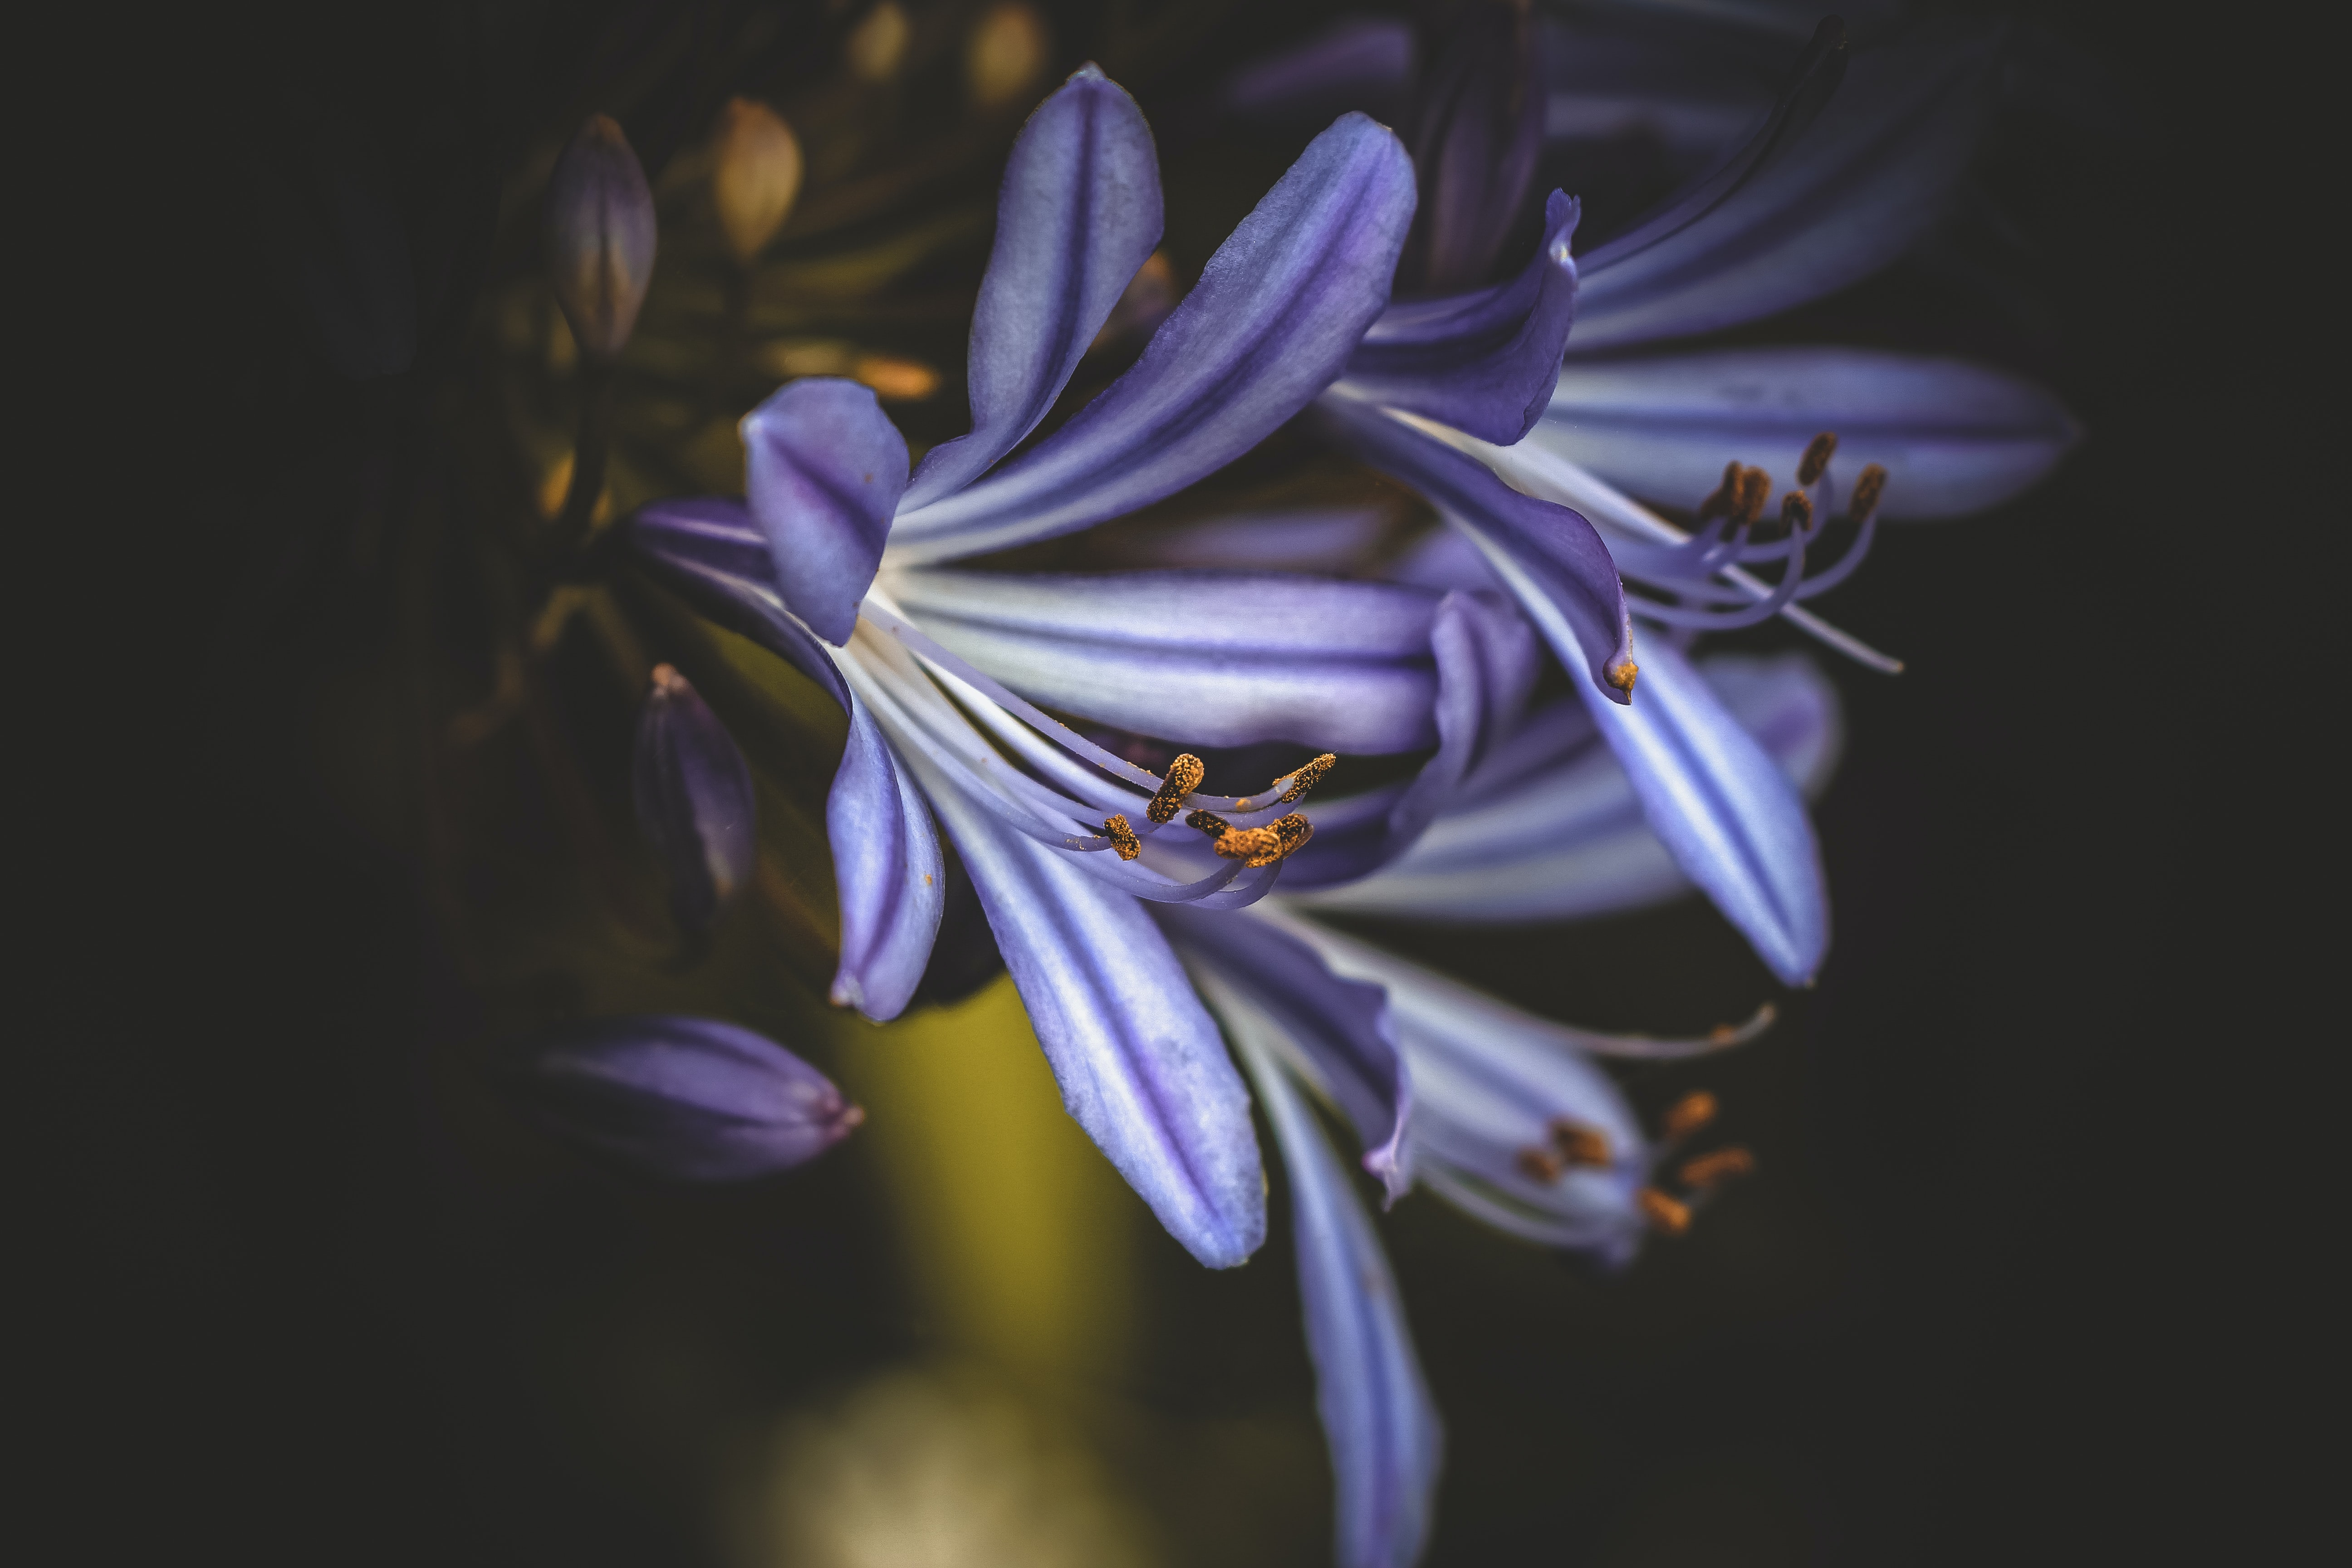 Close-up of violet hyacinth flowers